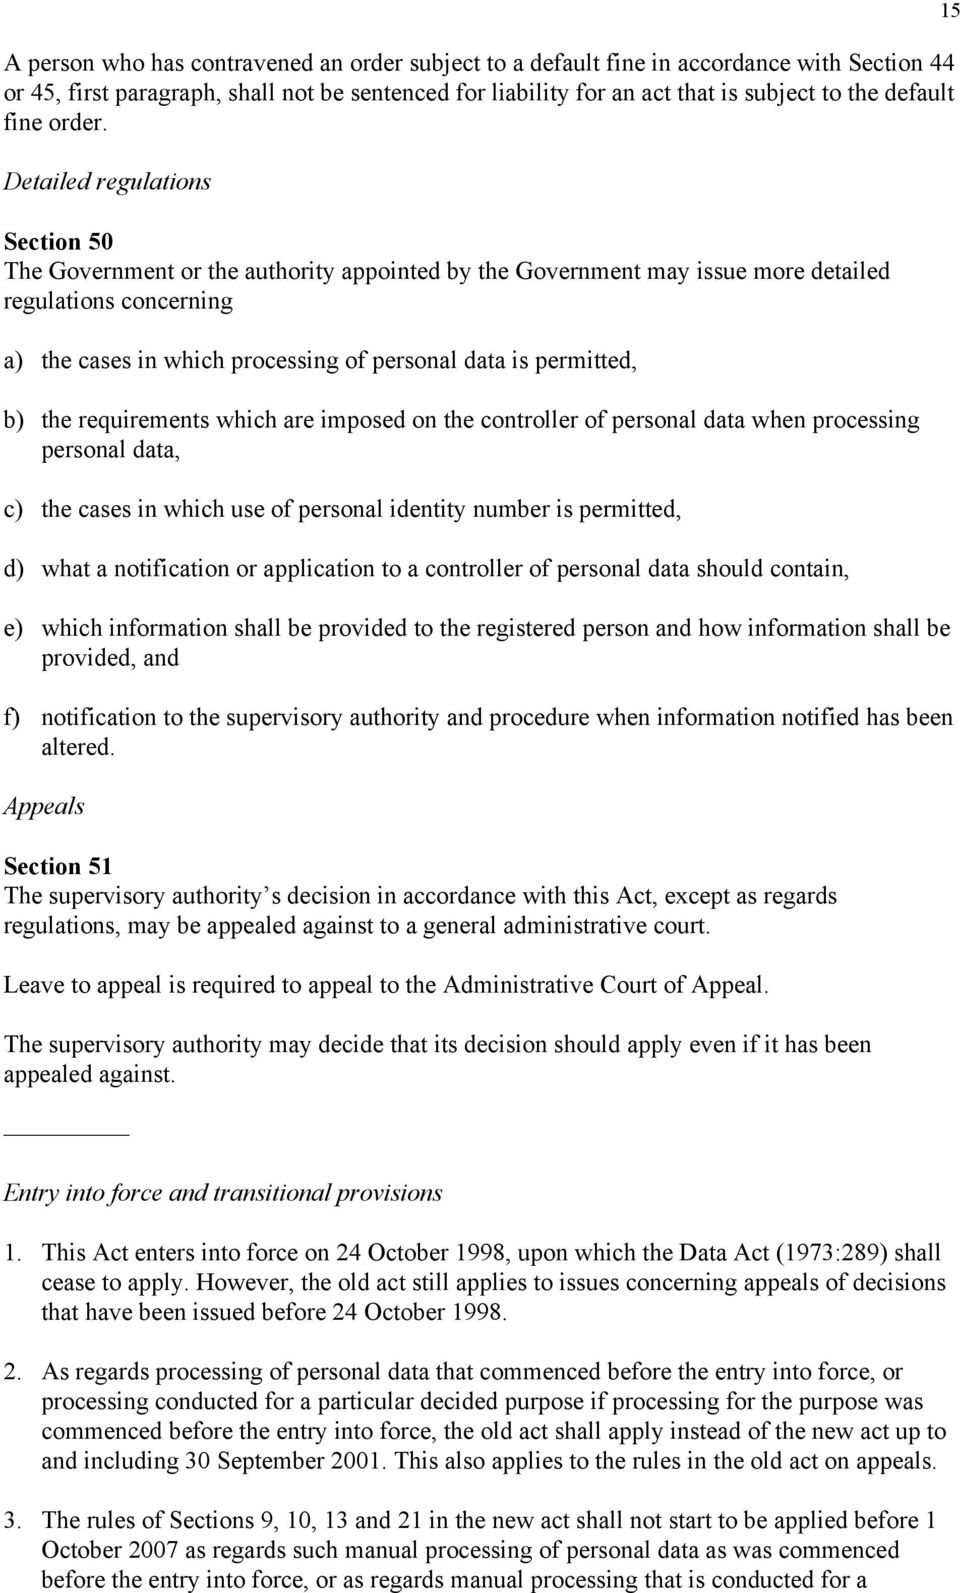 Detailed regulations Section 50 The Government or the authority appointed by the Government may issue more detailed regulations concerning a) the cases in which processing of personal data is